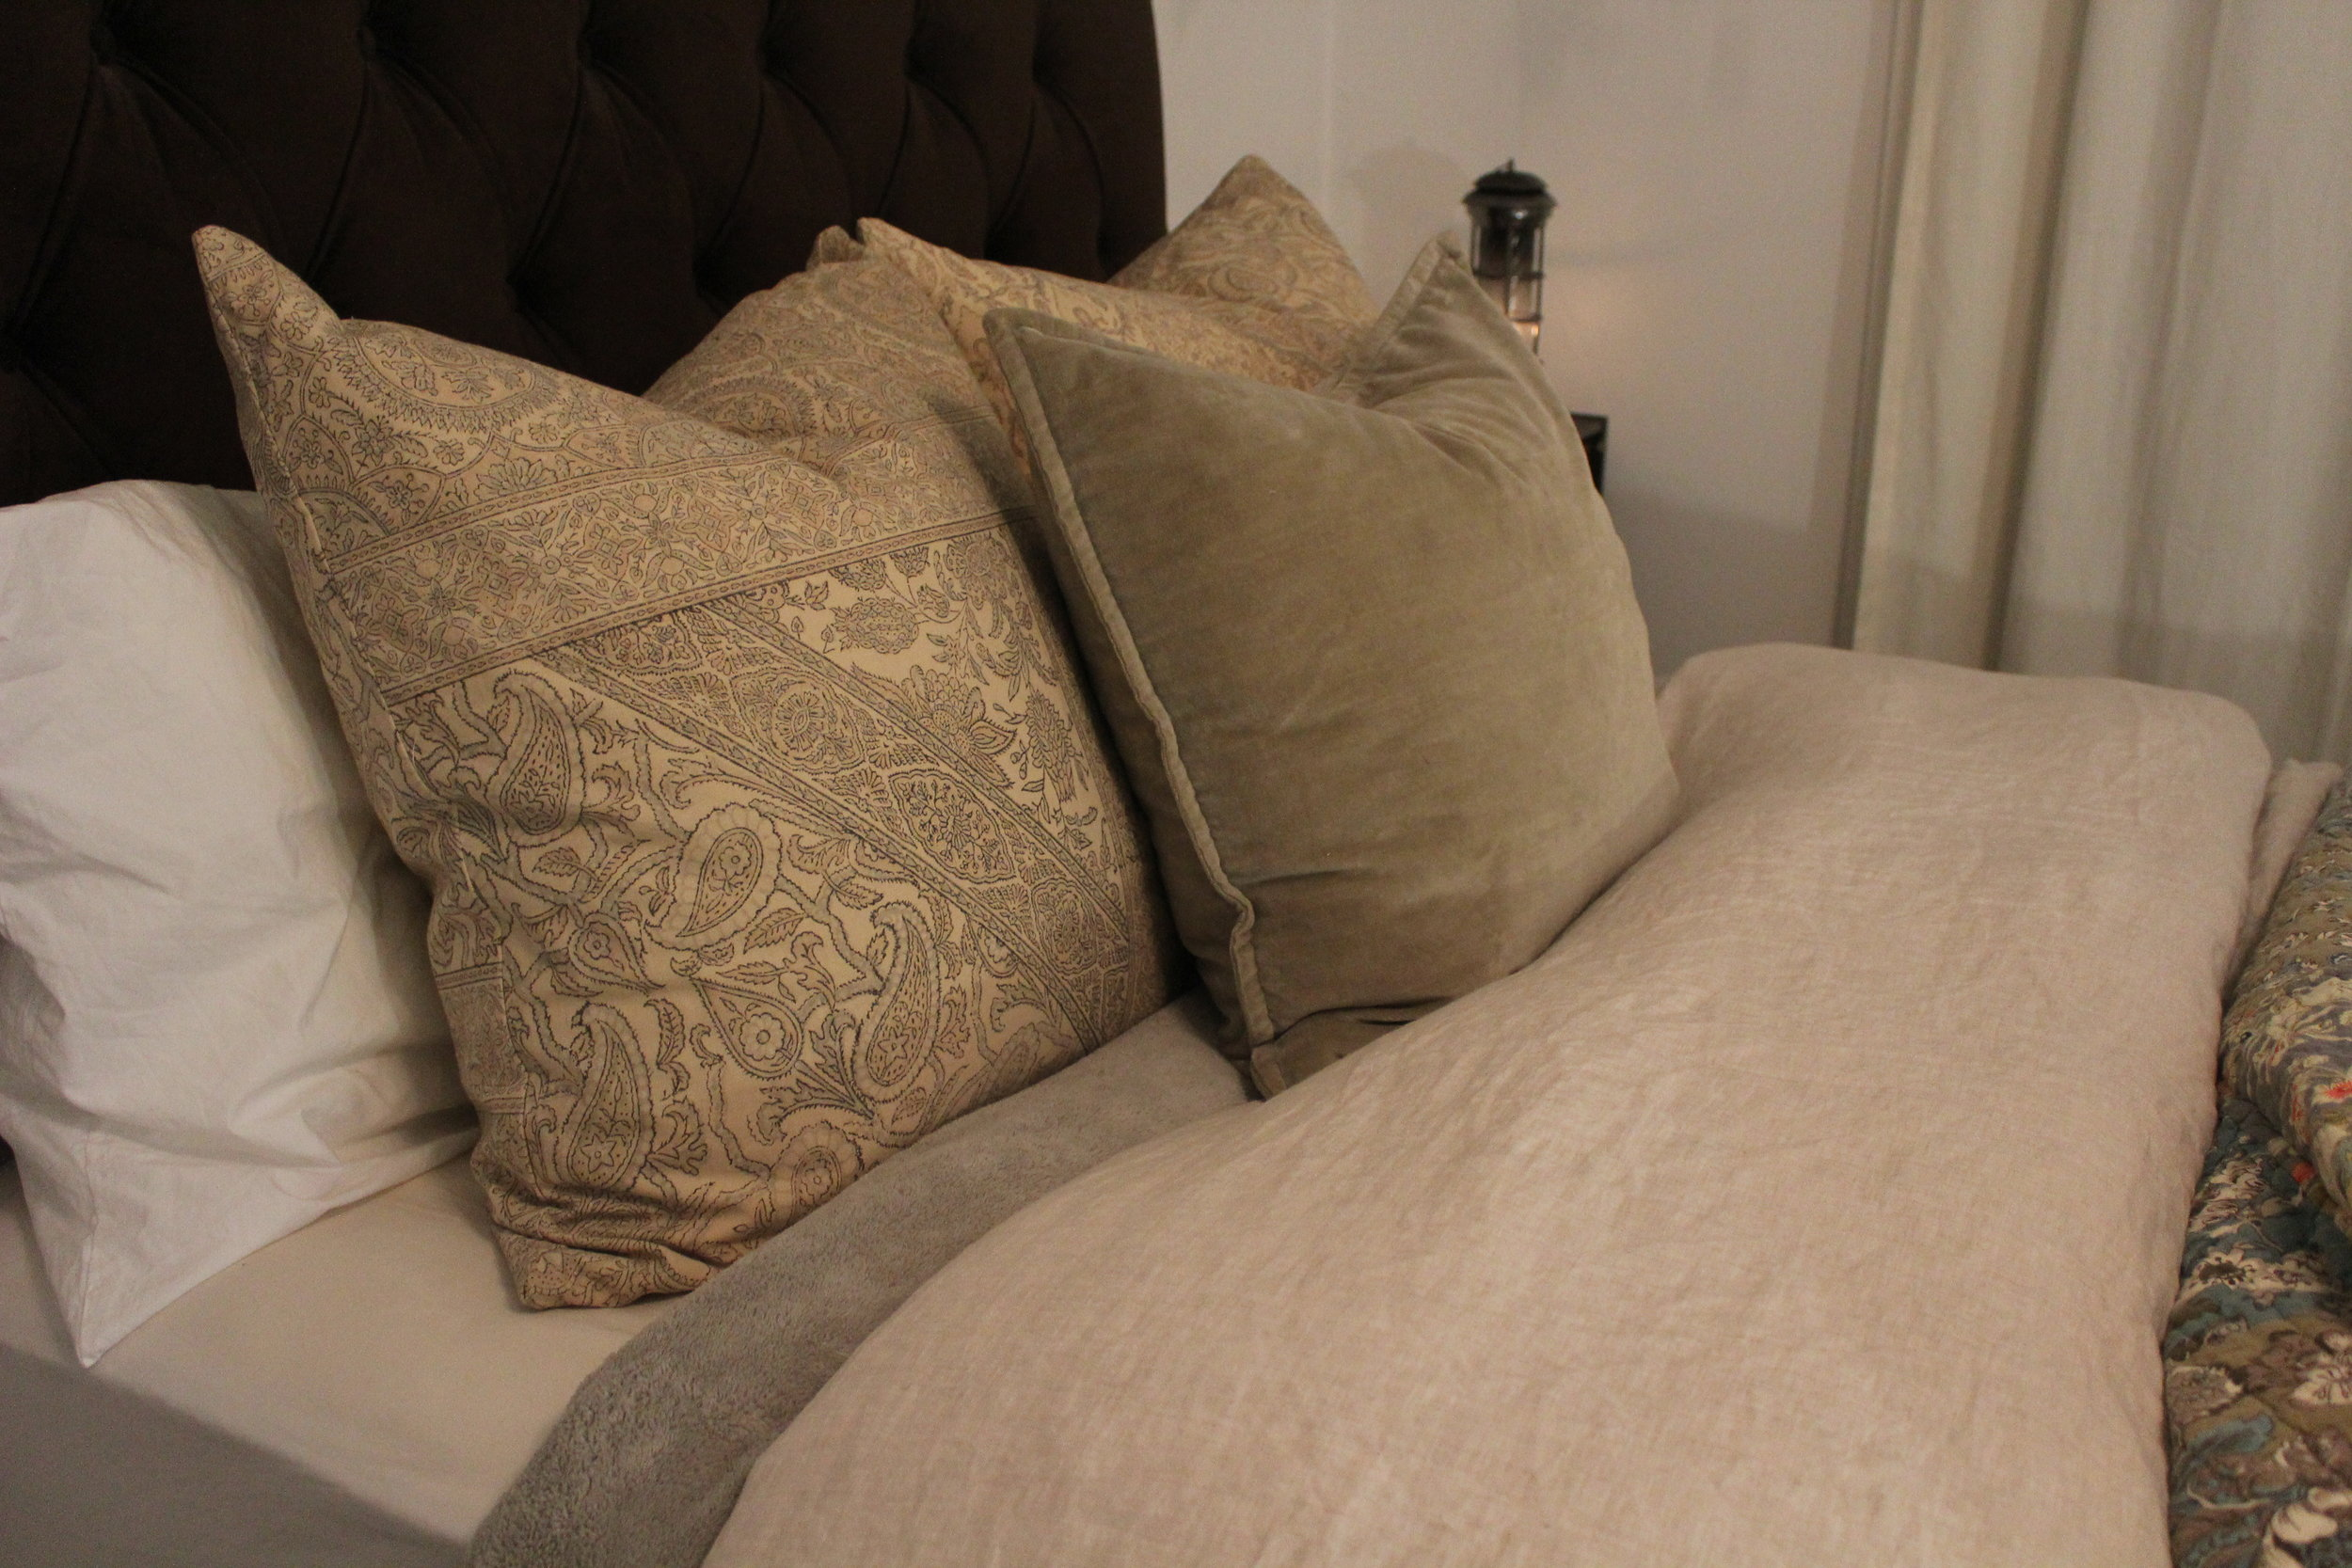 FALL - Start with a cozy fleece under the fluffy duvet and add a colorful quilt on top for just the right amount of warmth. The standard pillows are tucked behind two 24